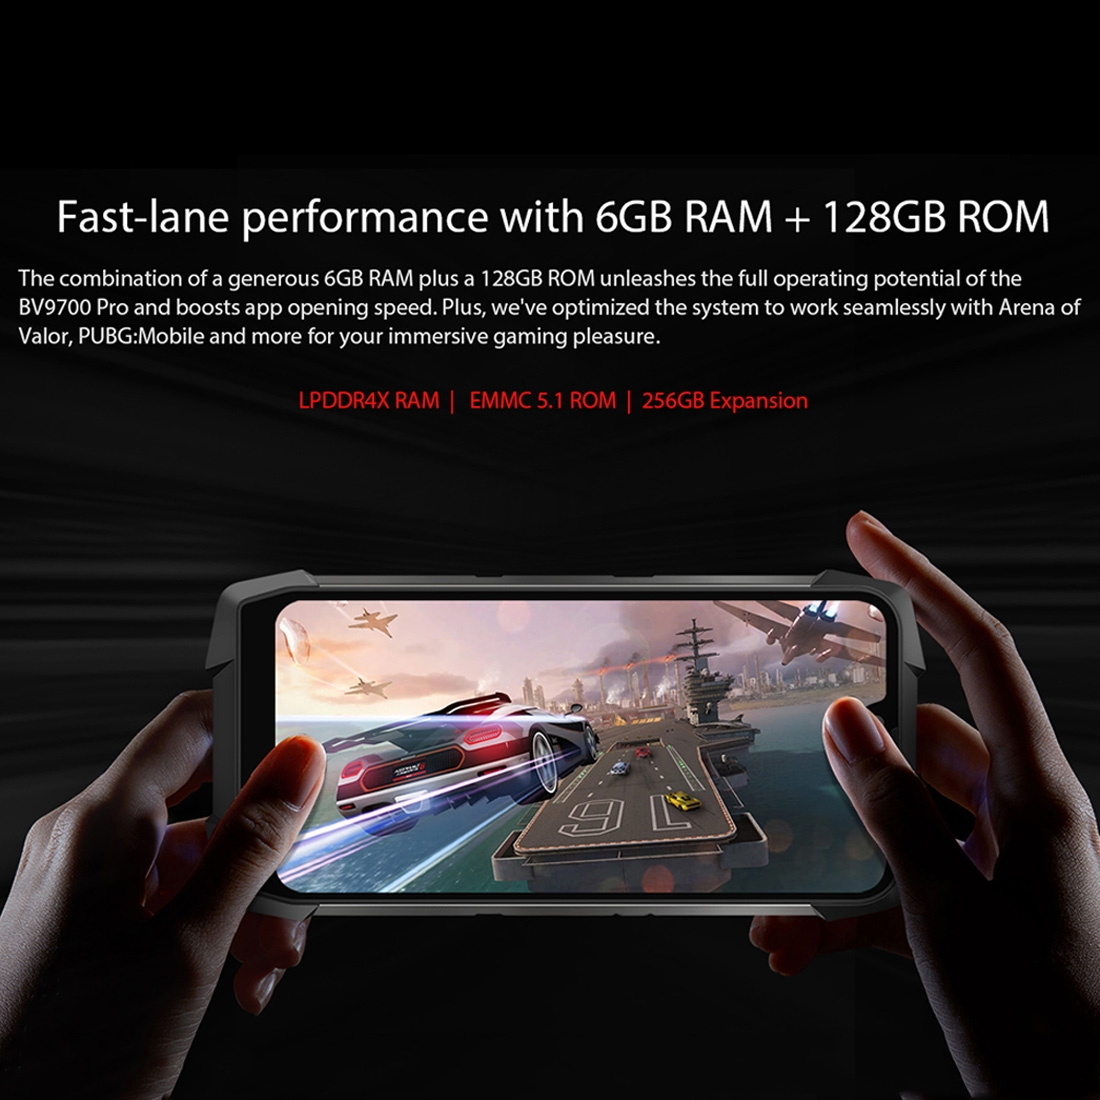 Blackview BV9700 Pro, 6GB/128GB, Android 9 0, First200 Warranty* VOC  detection, Helio p70 AI, Samsung cameras, dual 4G sims, WITHOUT Night  Vision